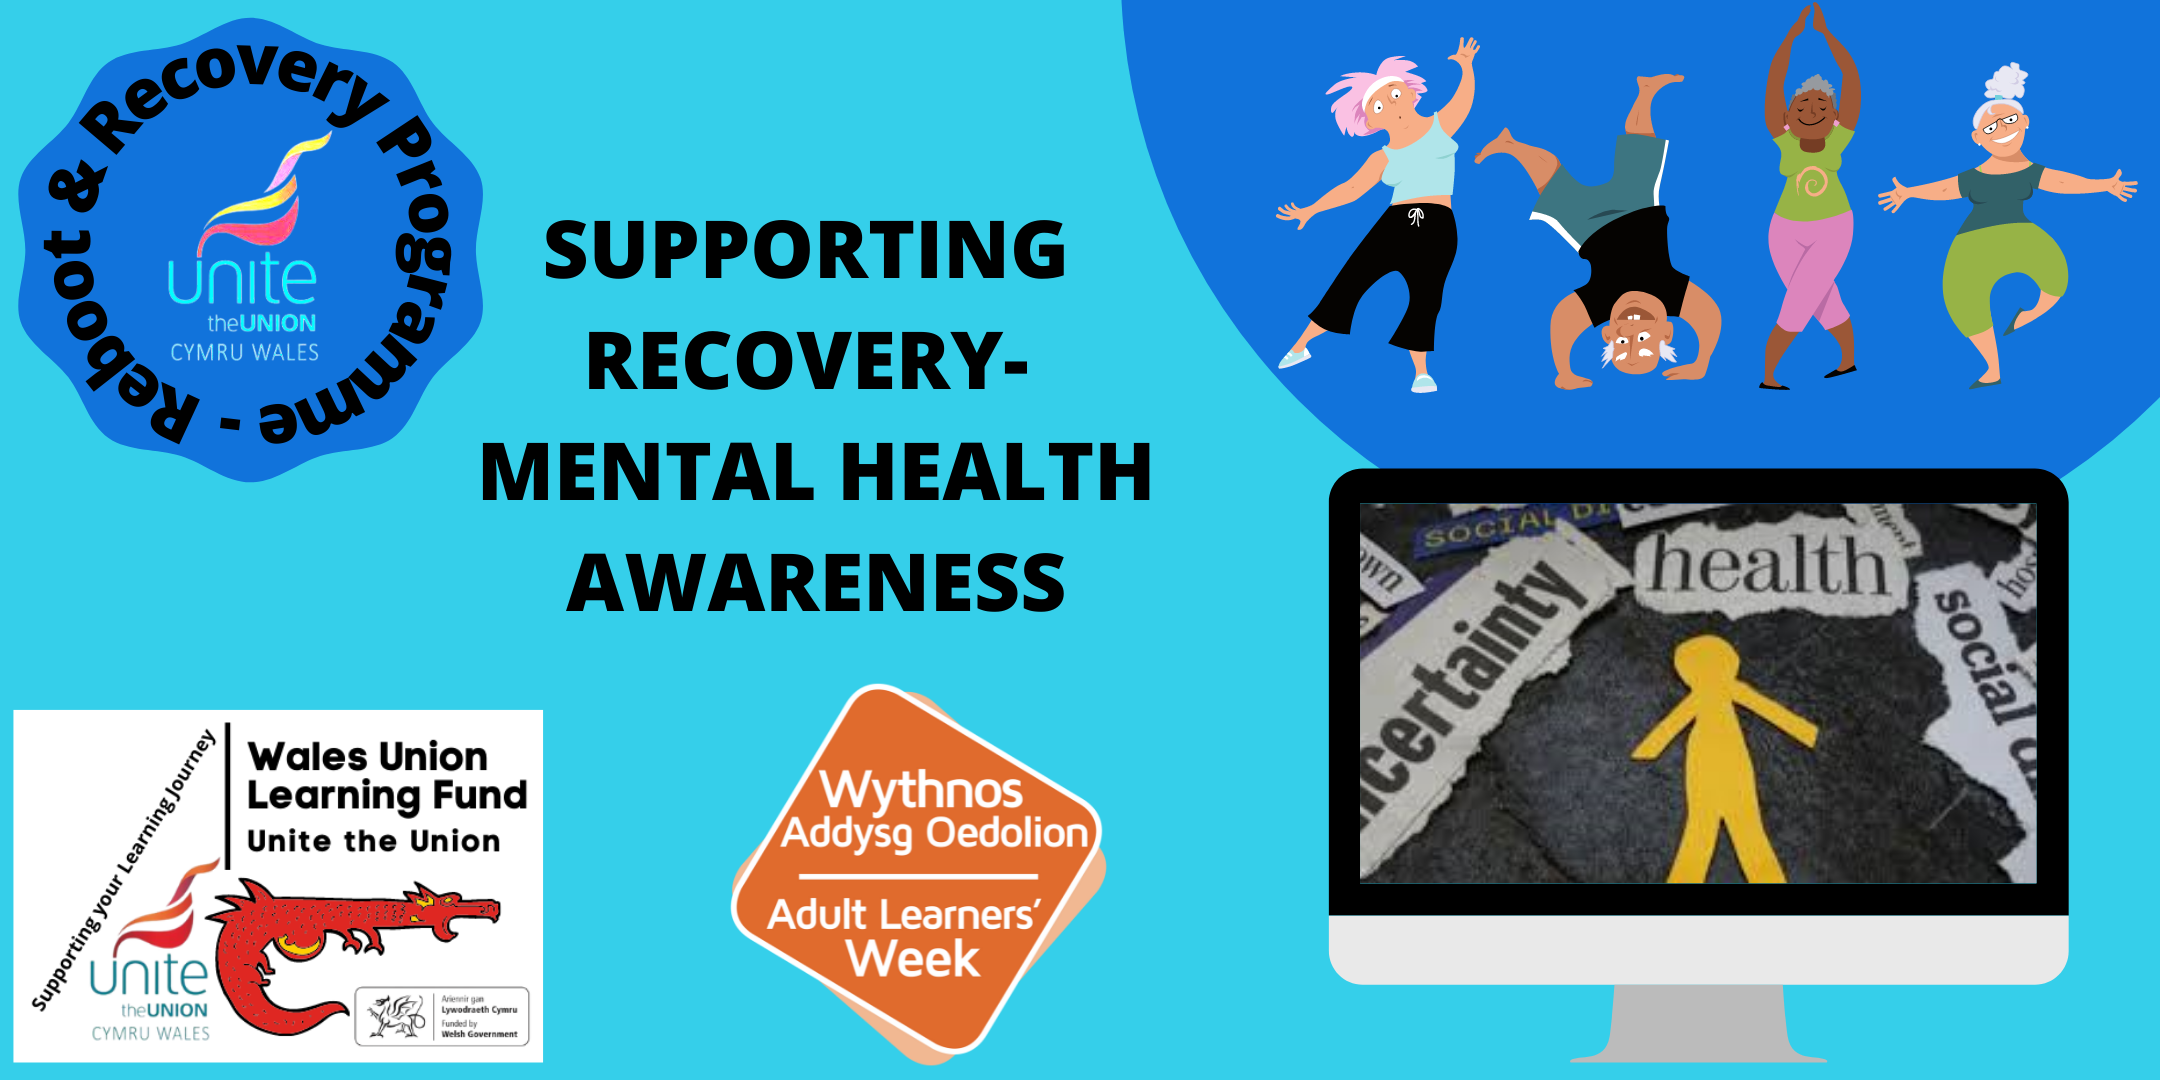 reboot-recovery-supporting-recovery-mental-health-awareness